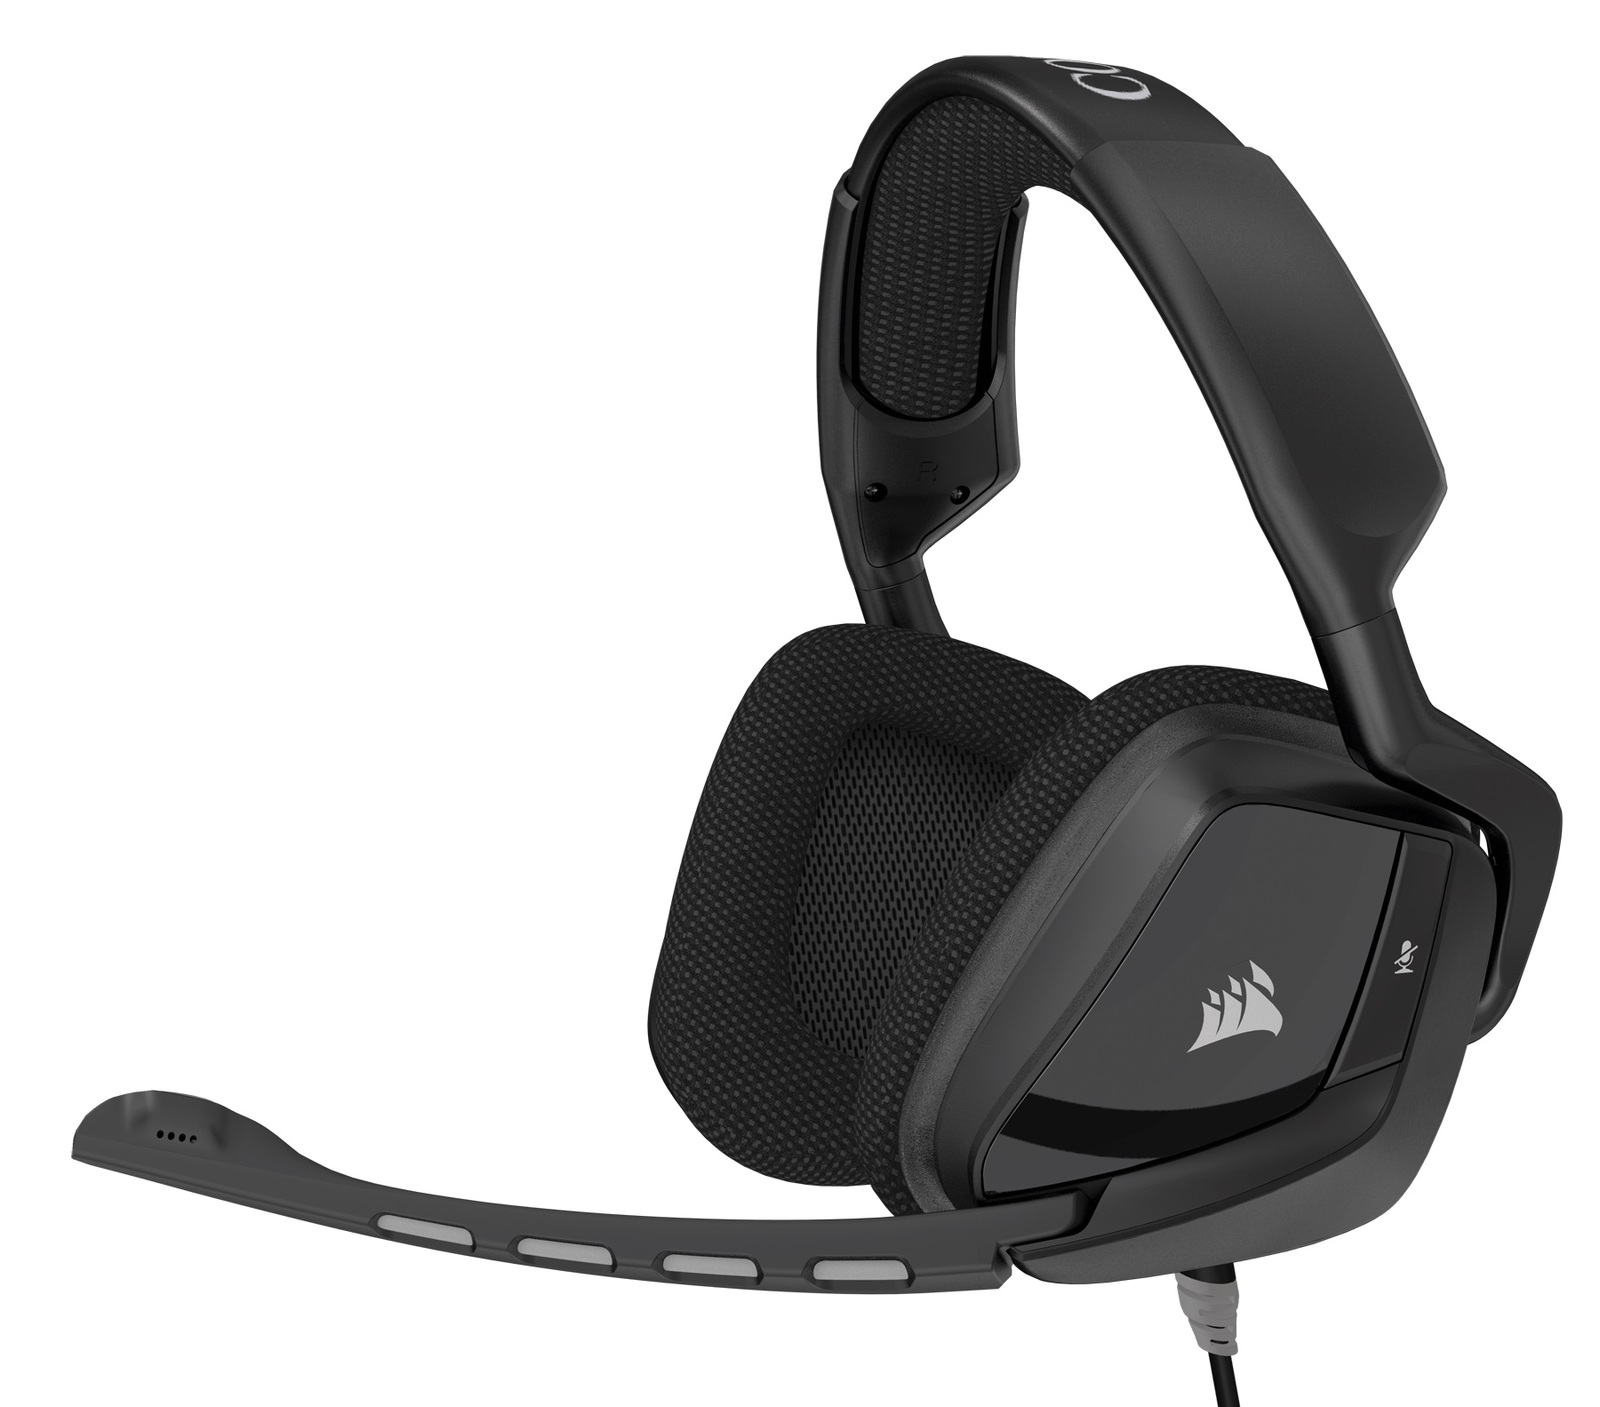 Corsair Gaming VOID Surround Analog 3.5 mm USB Dolby 7.1 Comfortable Gaming Headset - Carbon for PC Games image